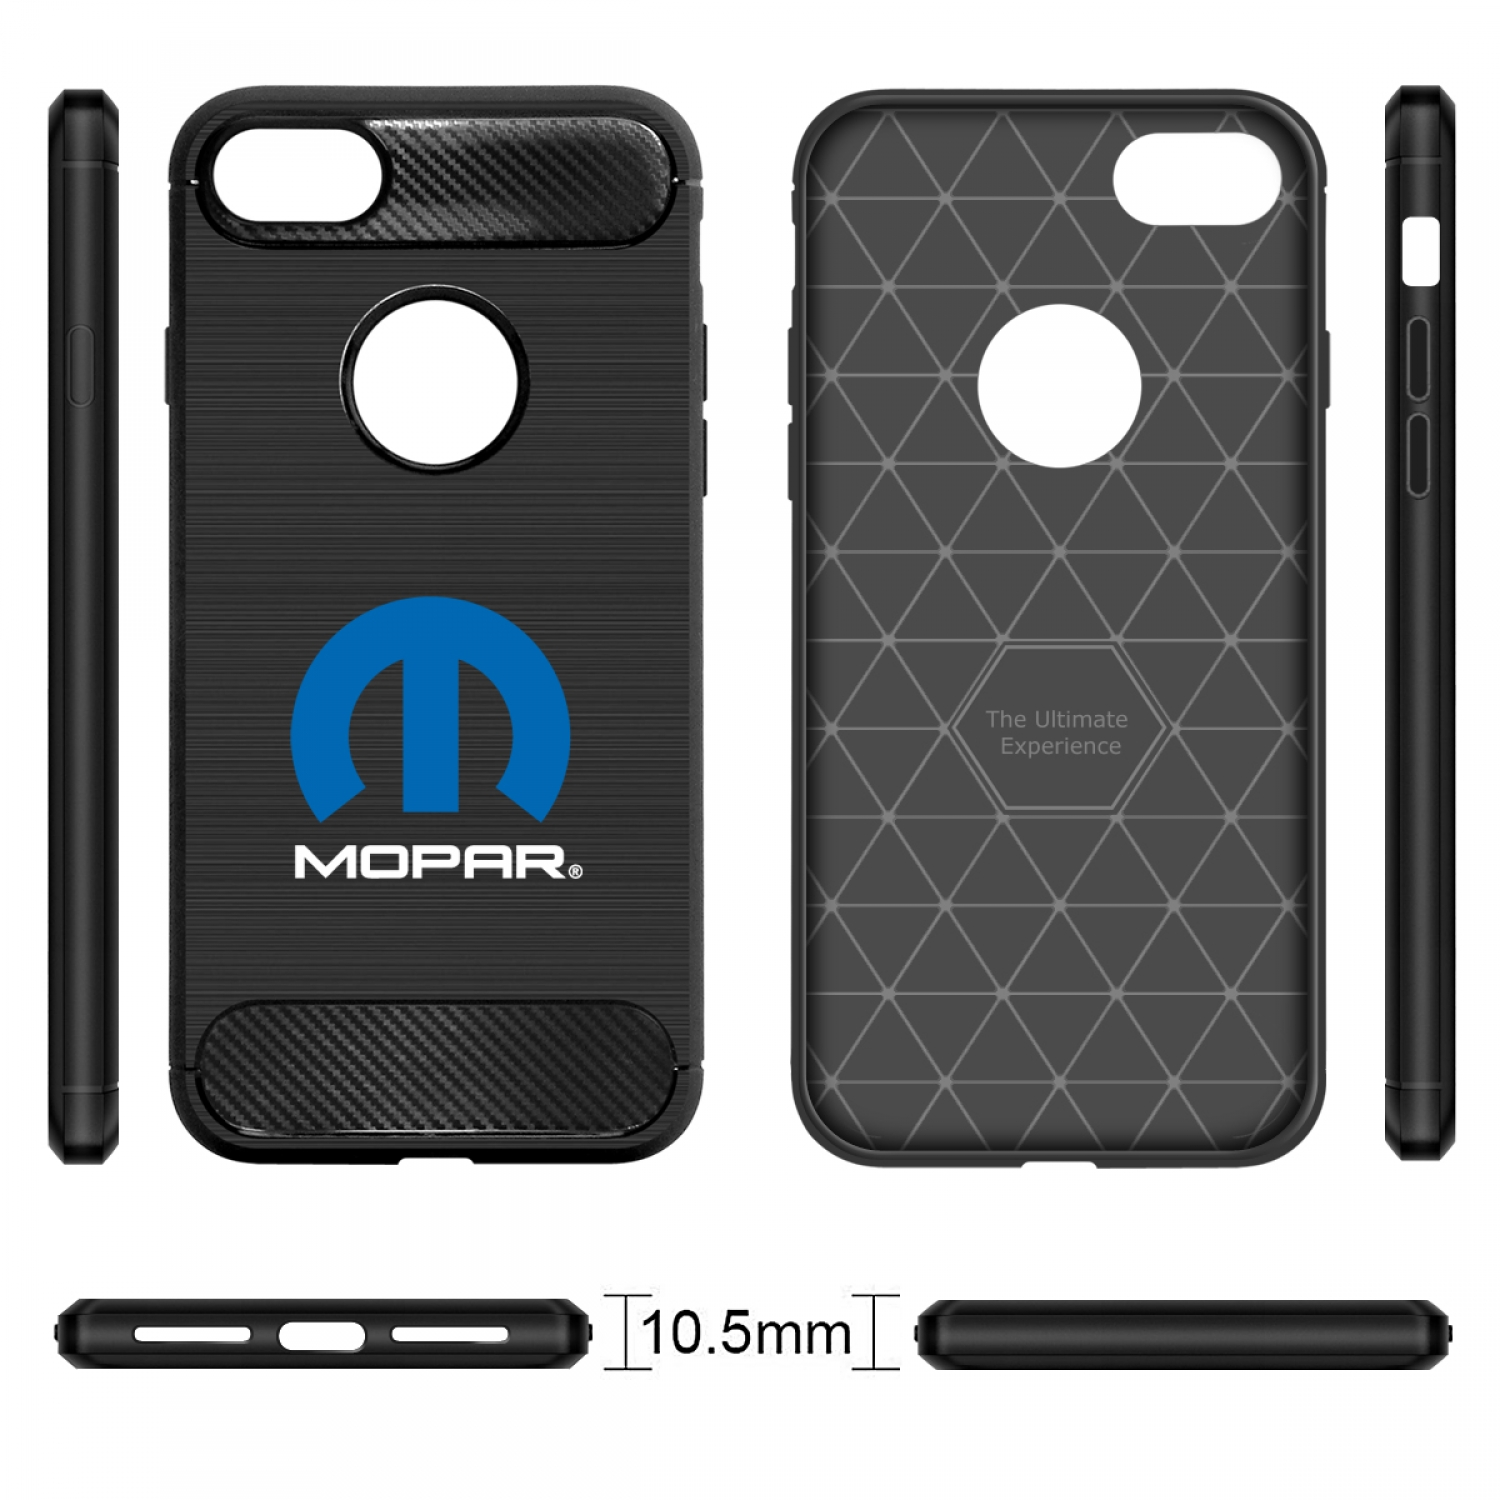 iPhone 7 Case, MOPAR Logo Black TPU Shockproof Carbon Fiber Textures Cell Phone Case